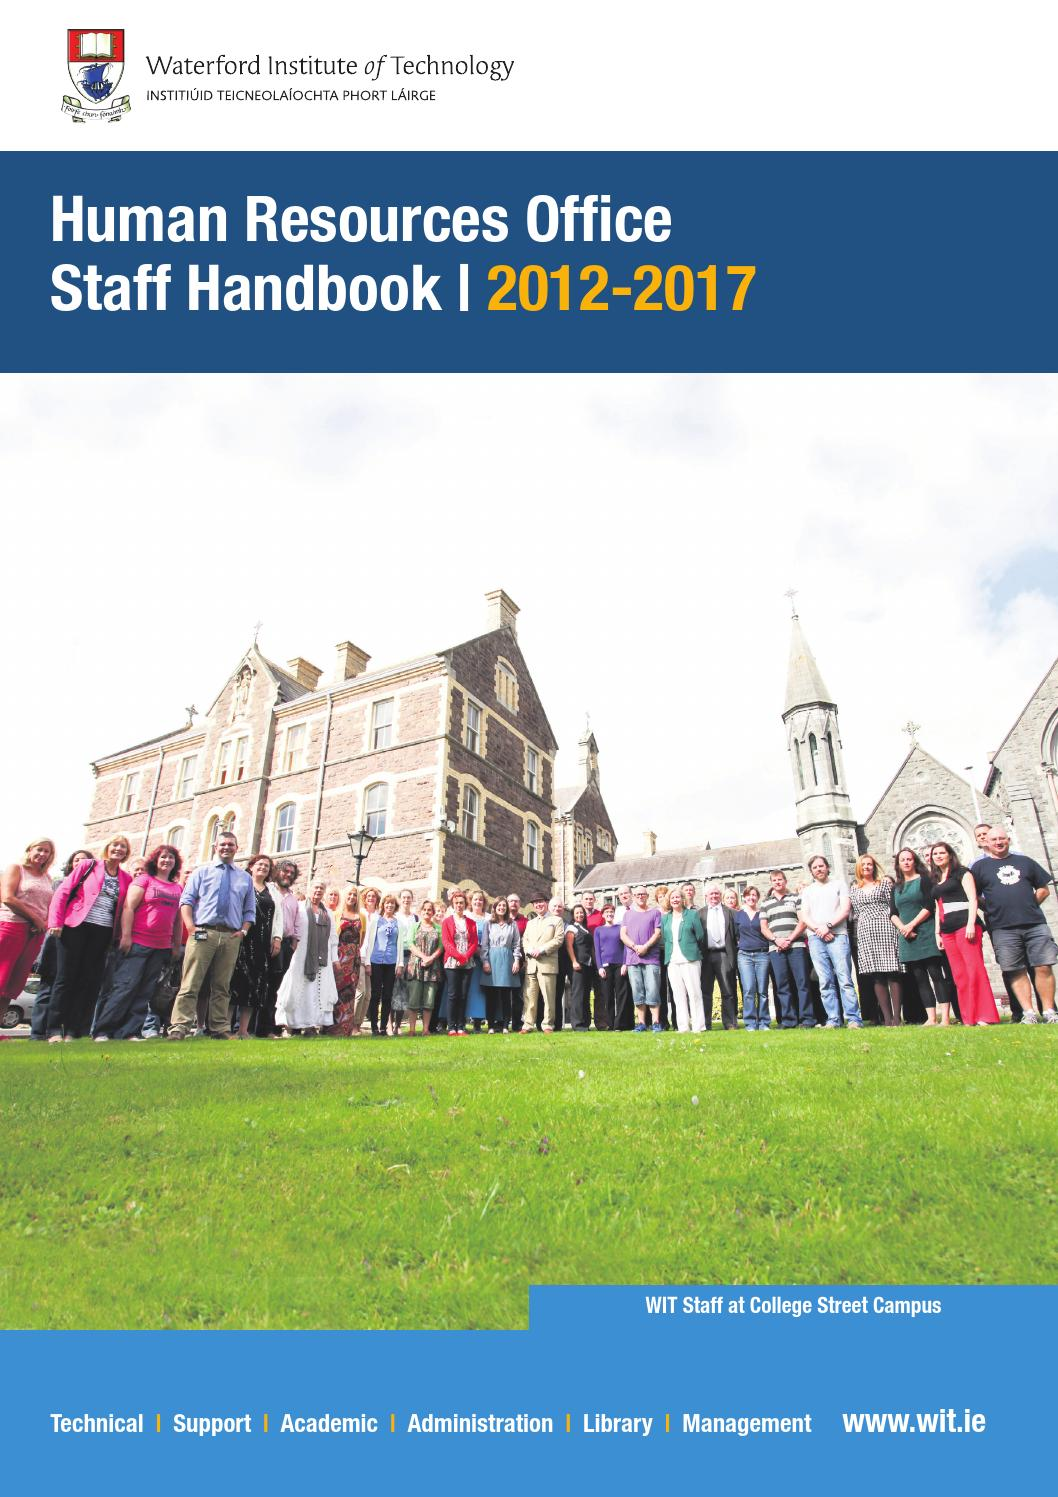 Wit staff handbook 2012 2017 by waterford institute of technology wit staff handbook 2012 2017 by waterford institute of technology issuu fandeluxe Images